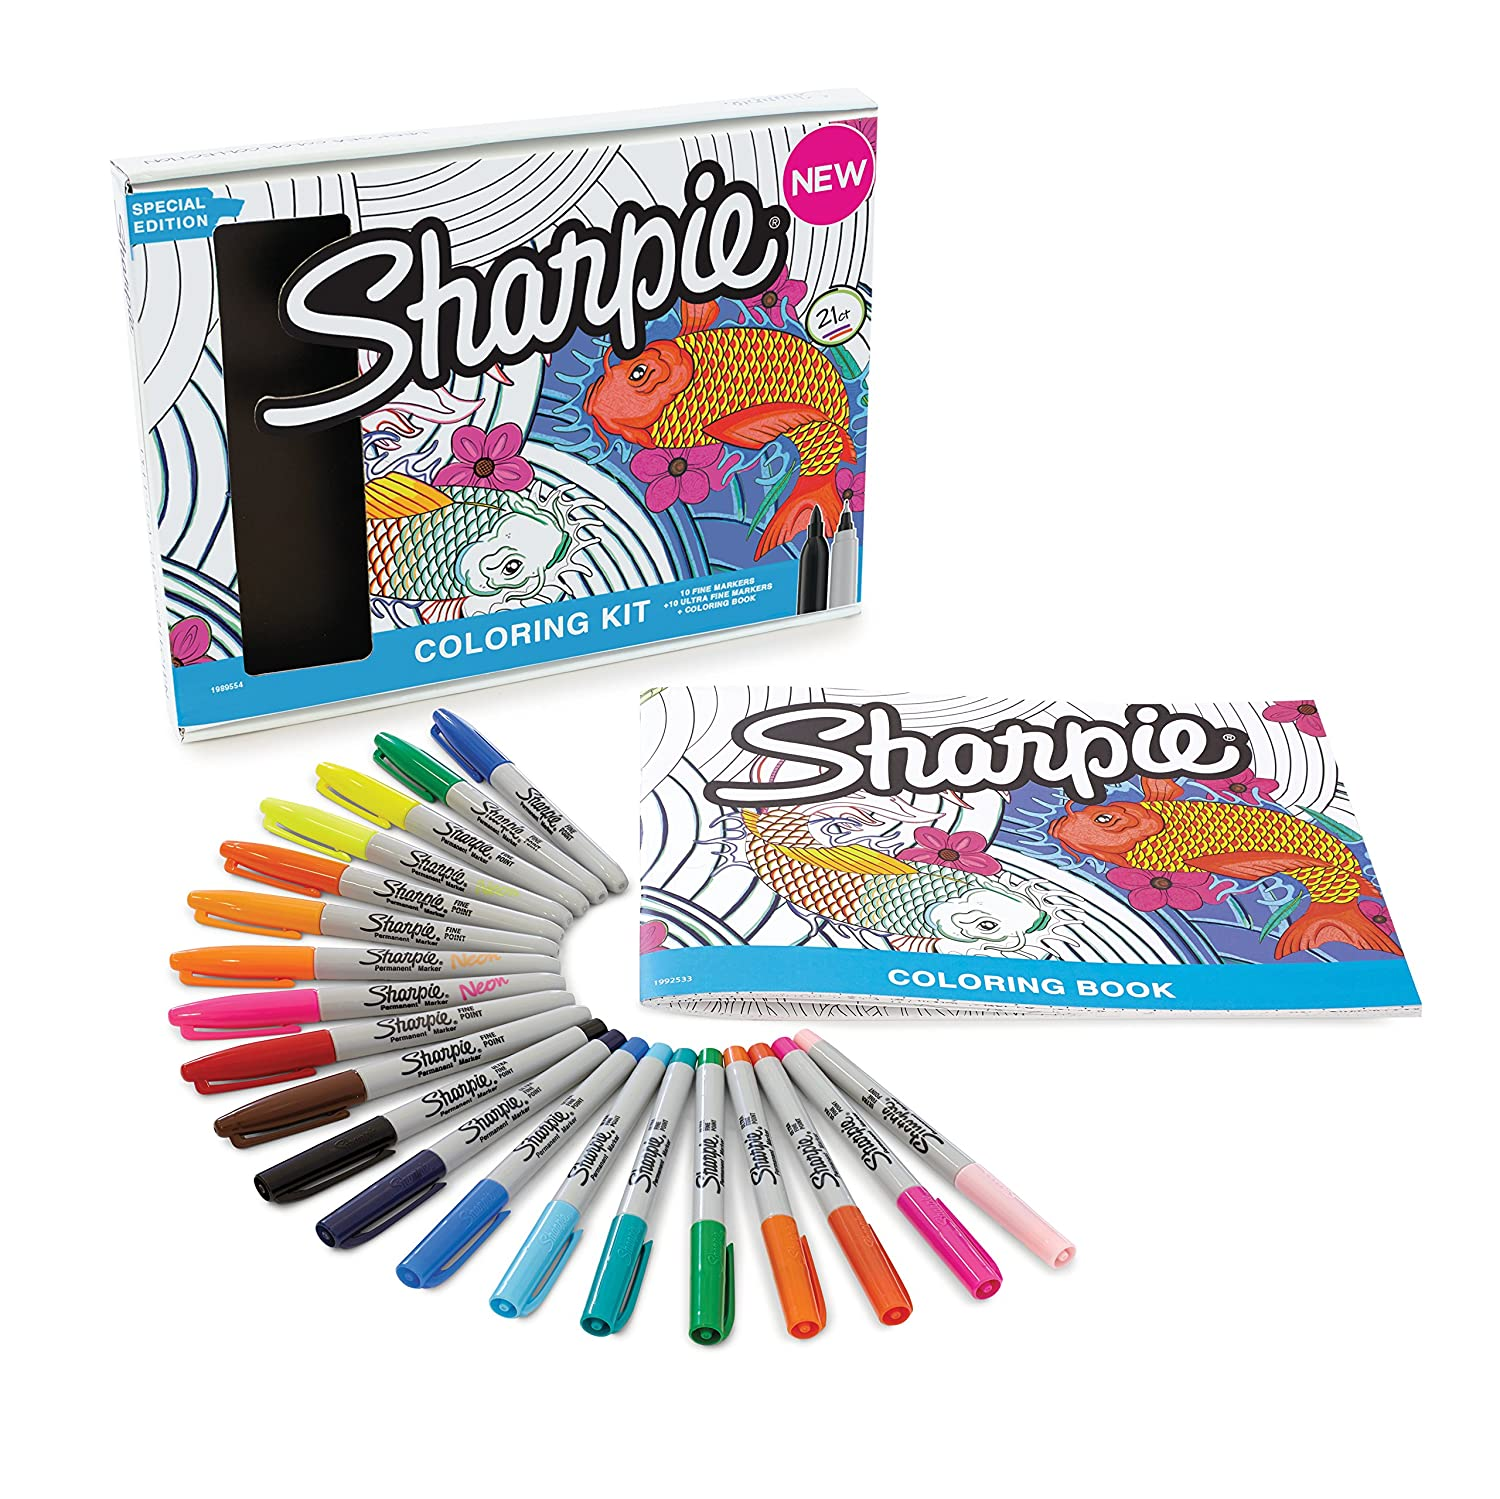 amazoncom sharpie permanent markers 10 fine 10 ultra fine tip assorted colors with aquatic themed adult coloring book office products - Magic Marker Coloring Book